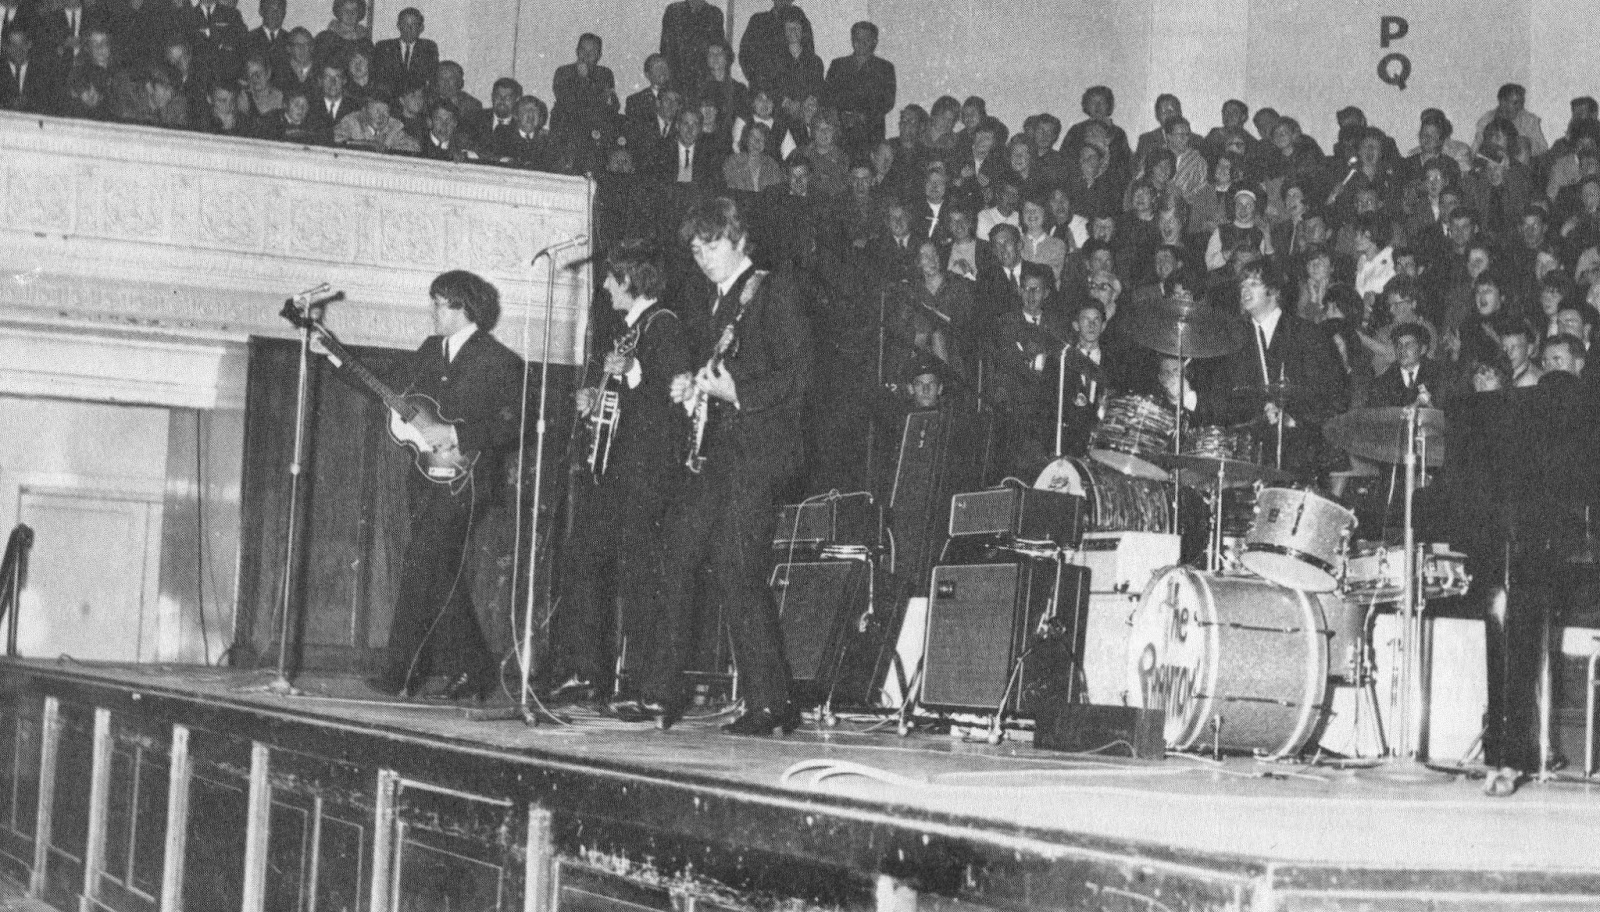 The Beatles performing in the Town Hall, 1964